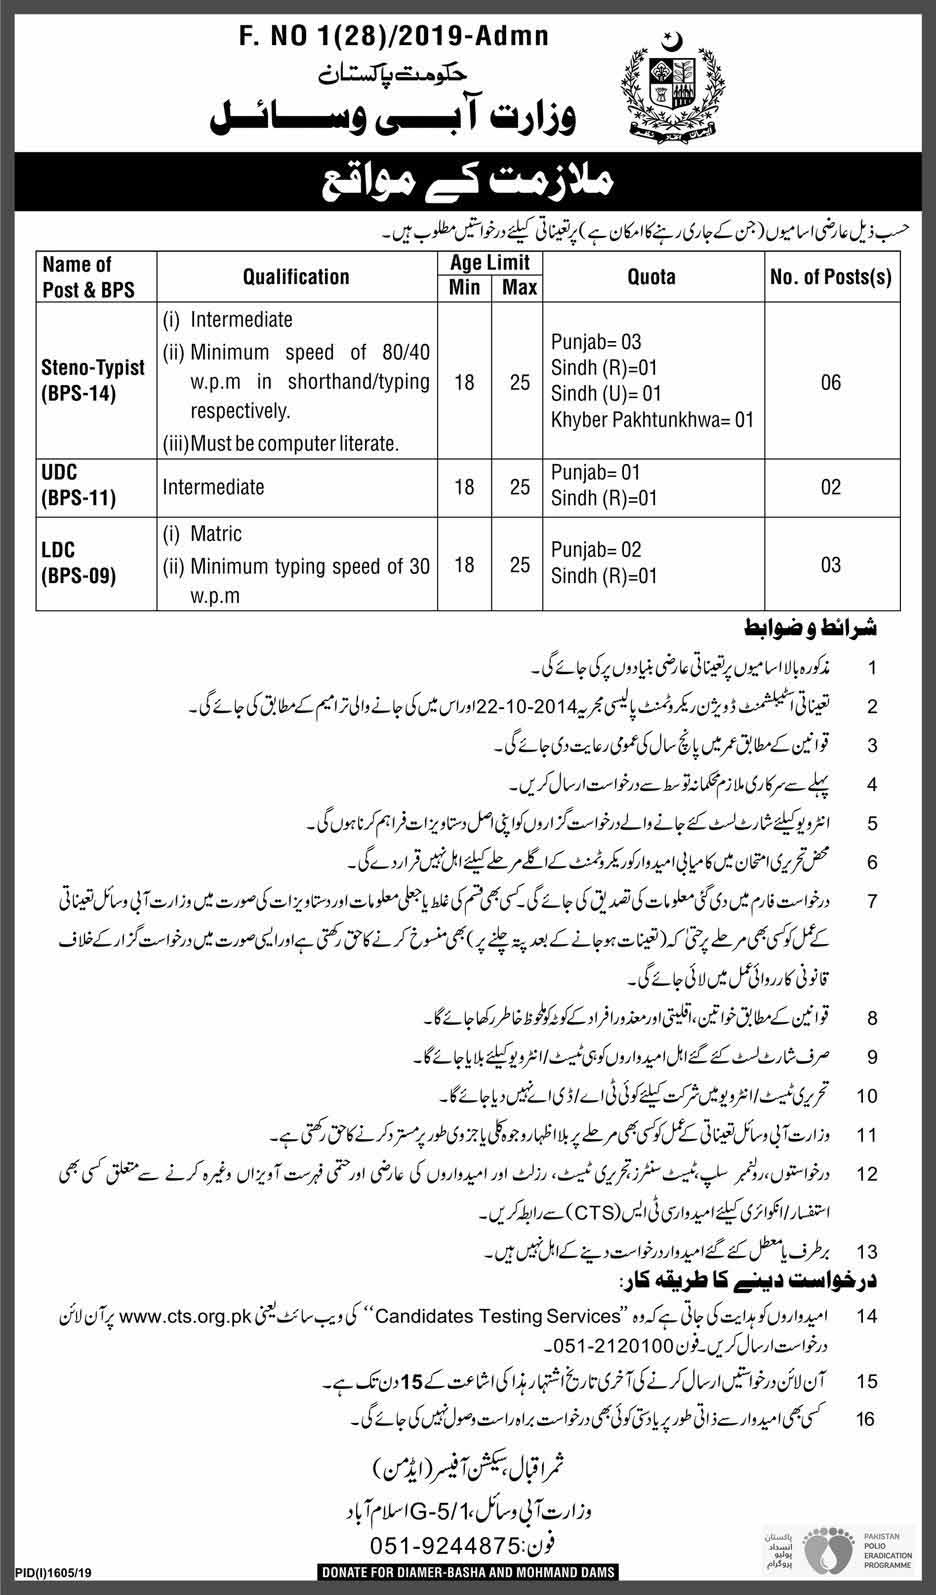 CTS Jobs in Ministry of Water Resources (AAbi Wesaail)